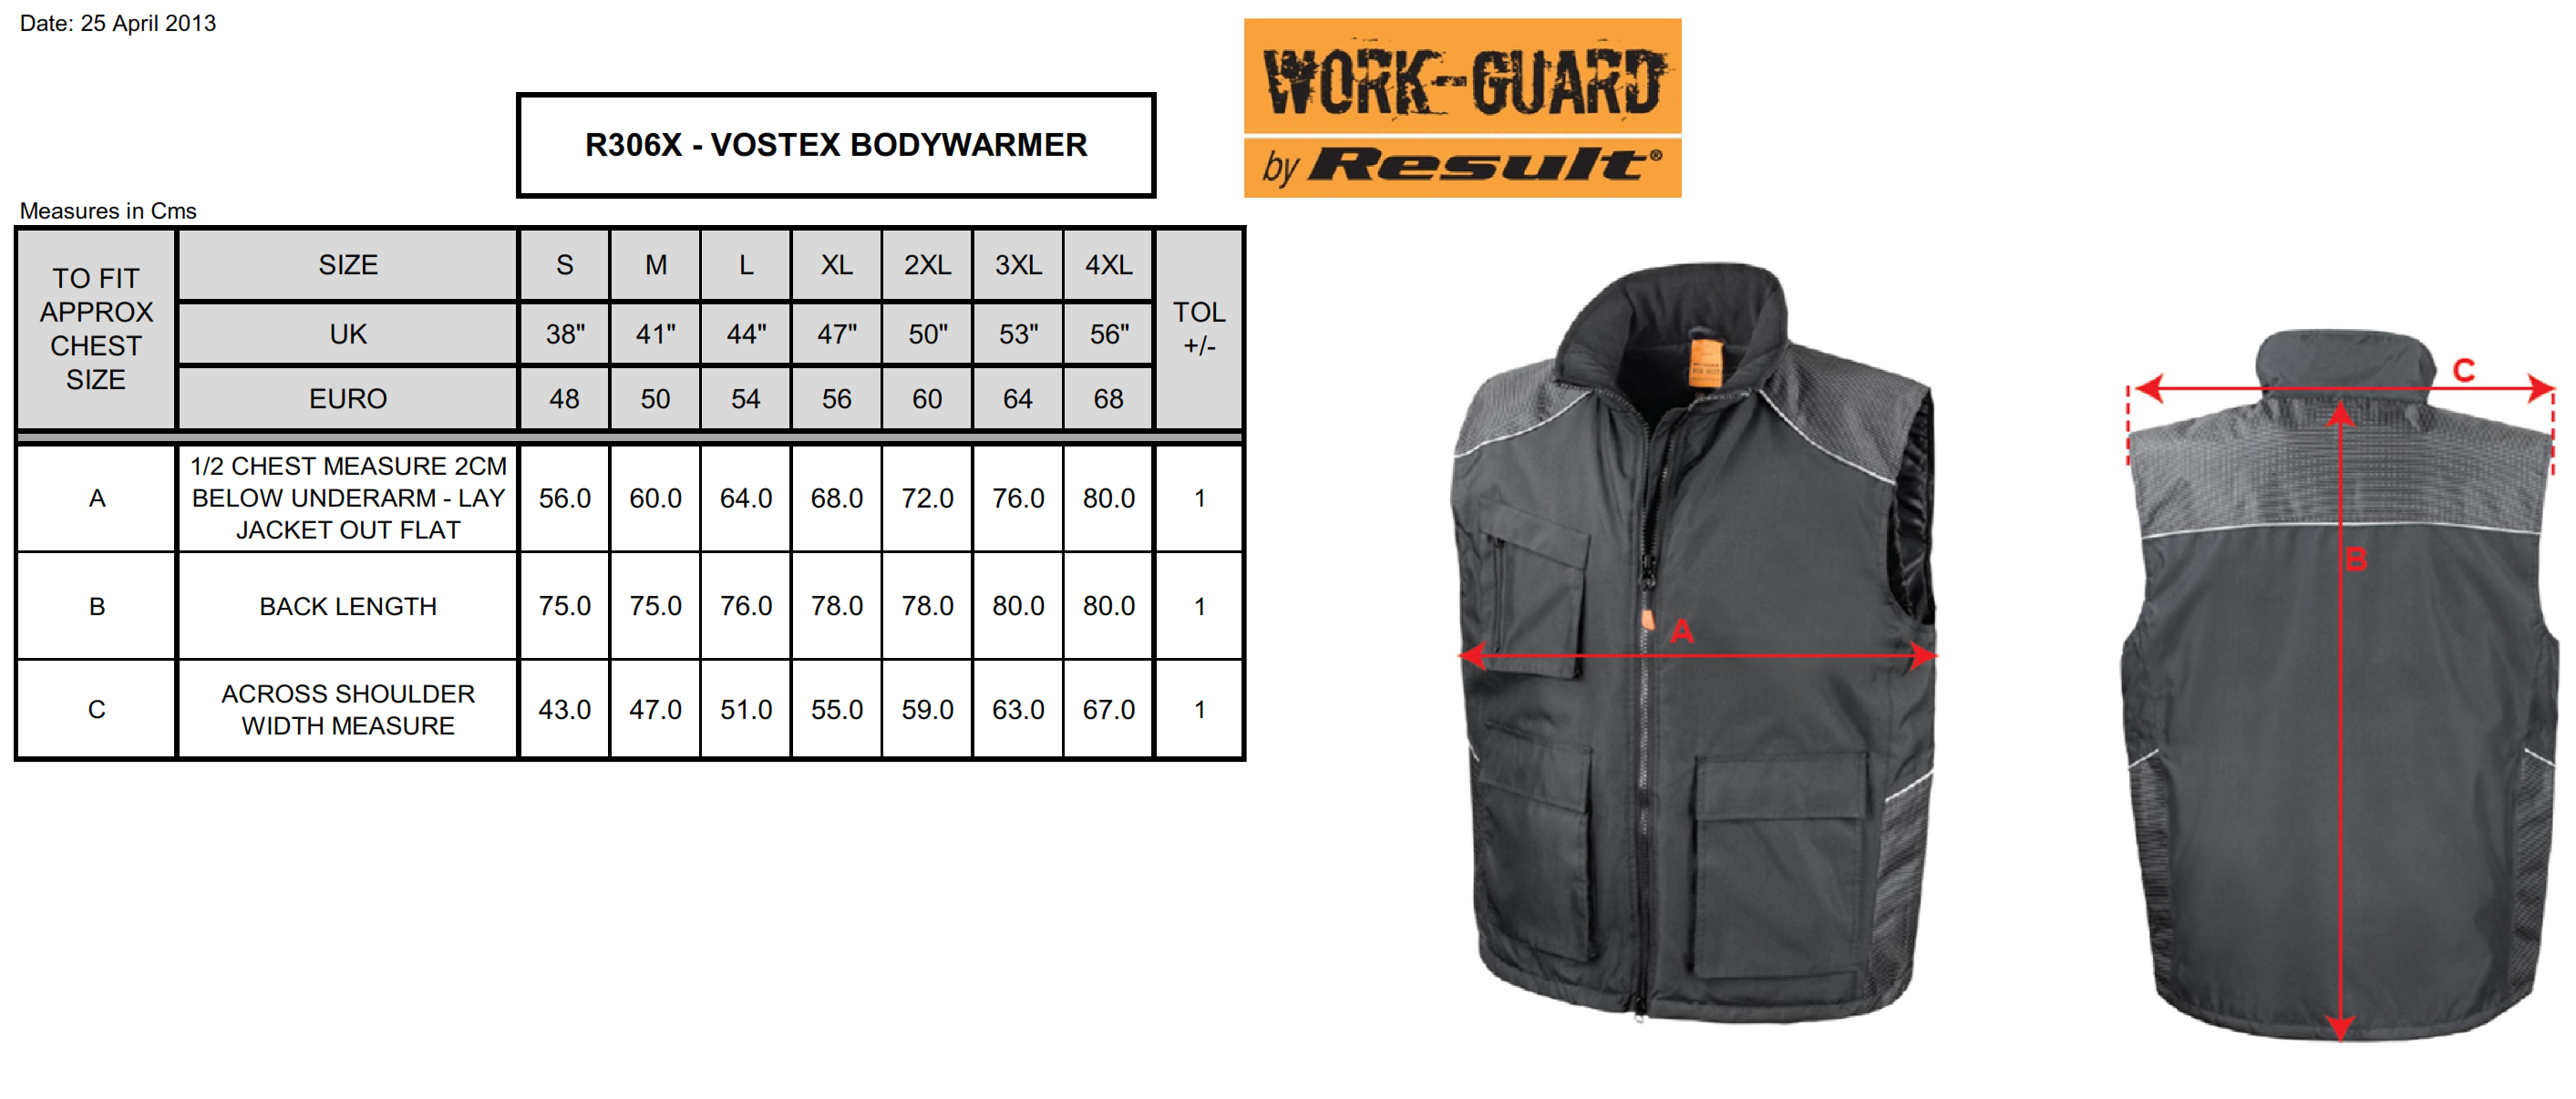 Result: Work-Guard Vostex Bodywarmer R306X